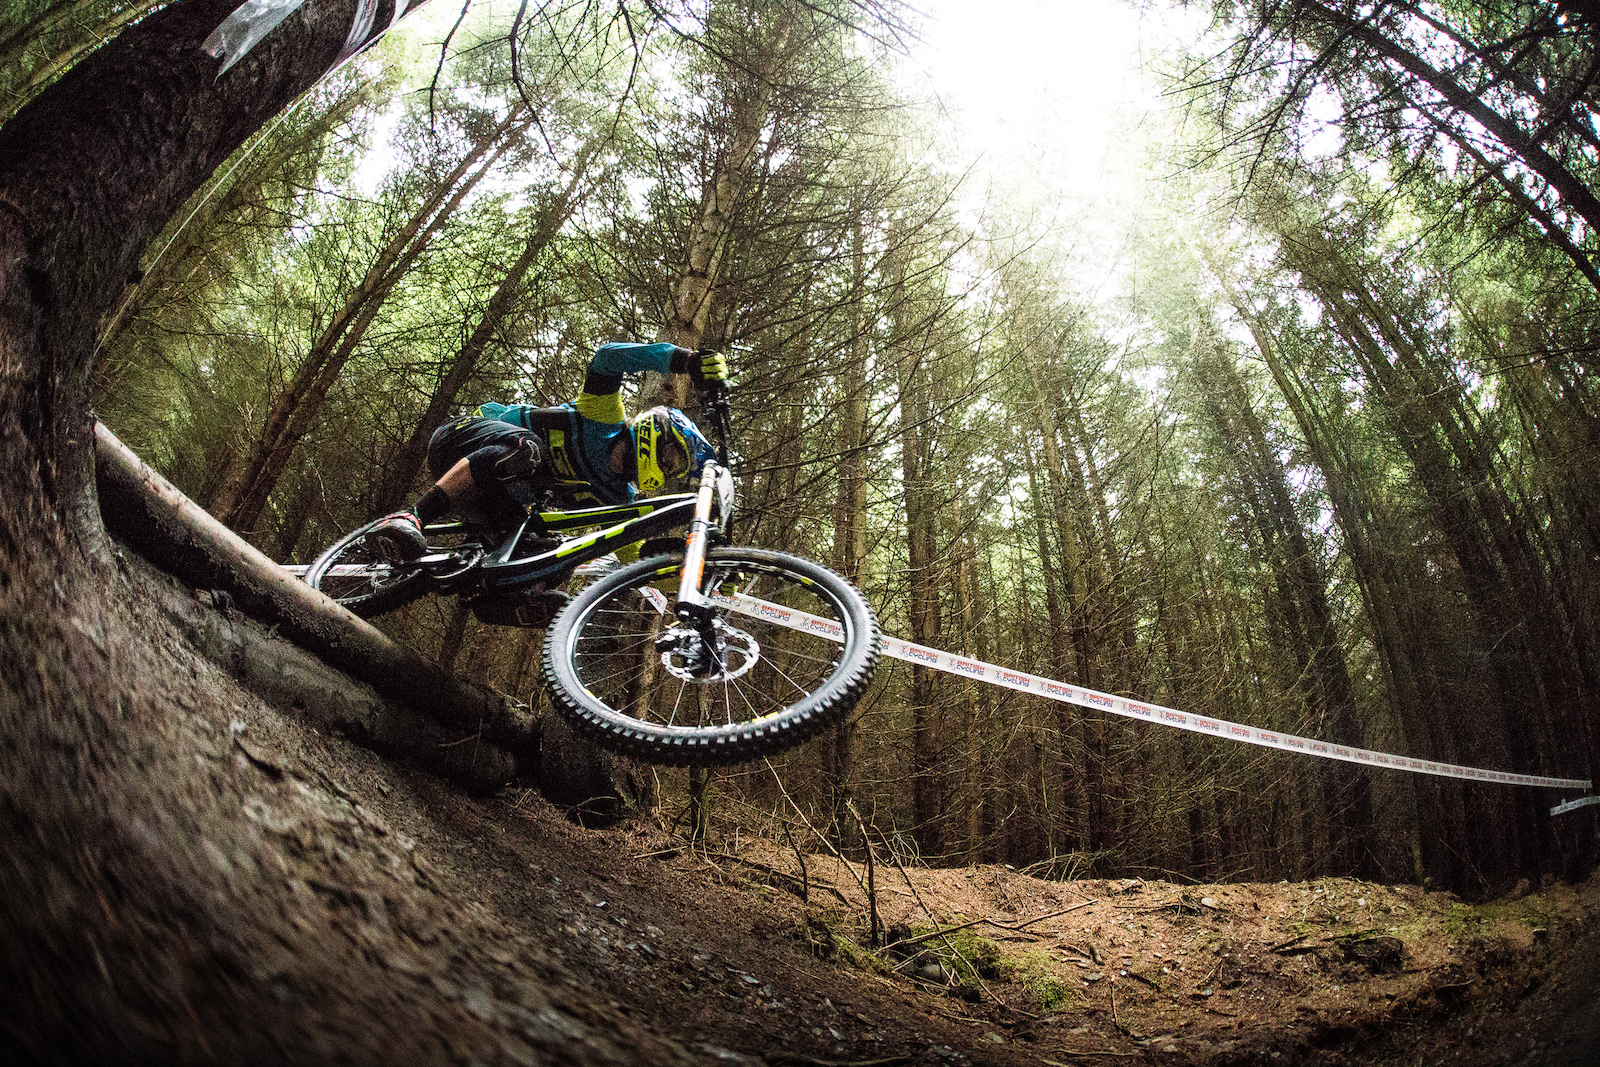 Sam Dale s current World Cup season hasn t been his best but he is here to make his mark on UK soil.